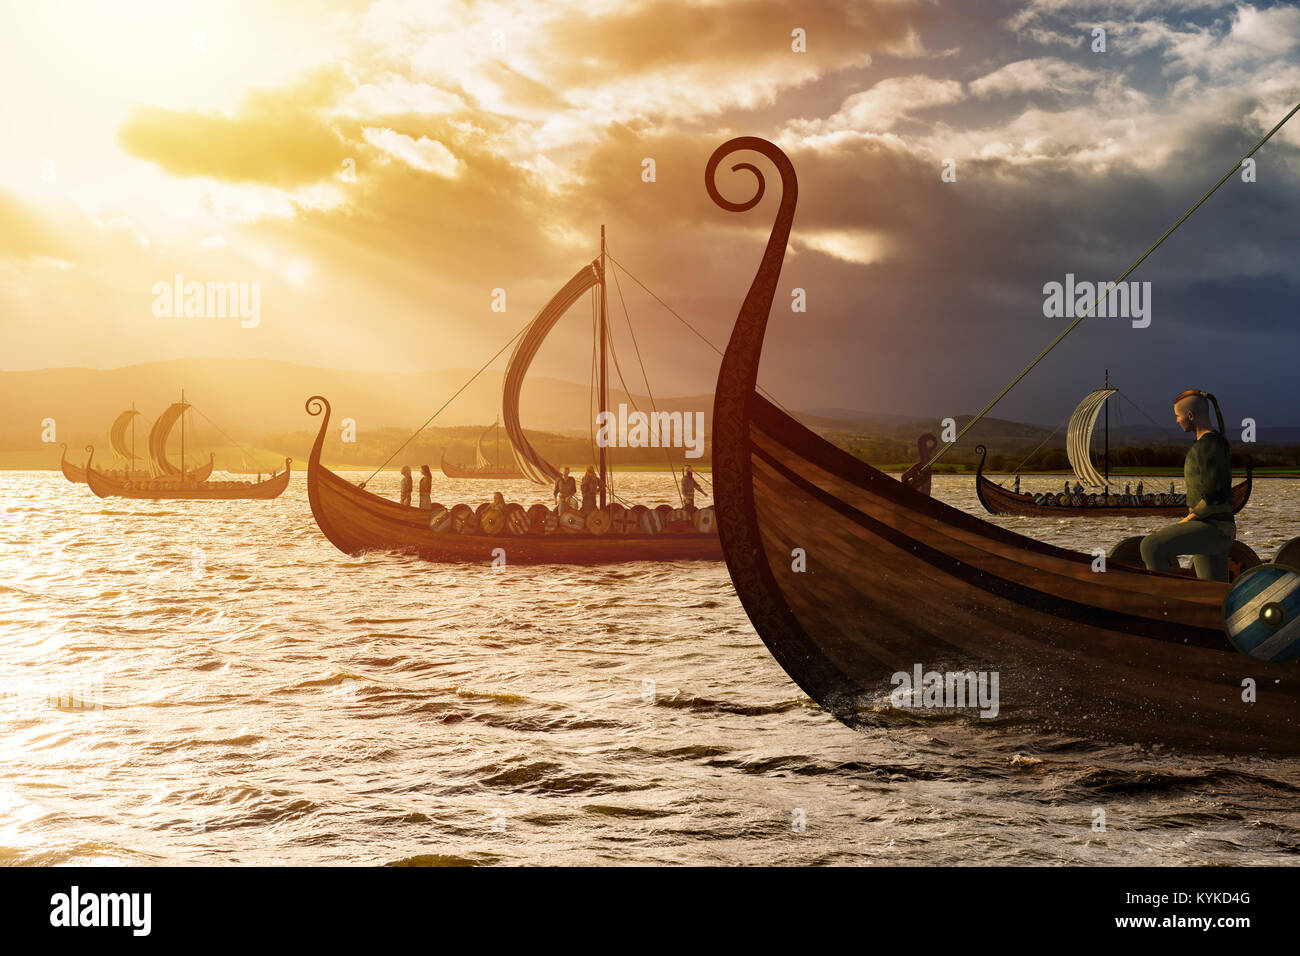 Viking ships on the water under the sunlight and dark storm. Invasion in the storm. - Stock Image